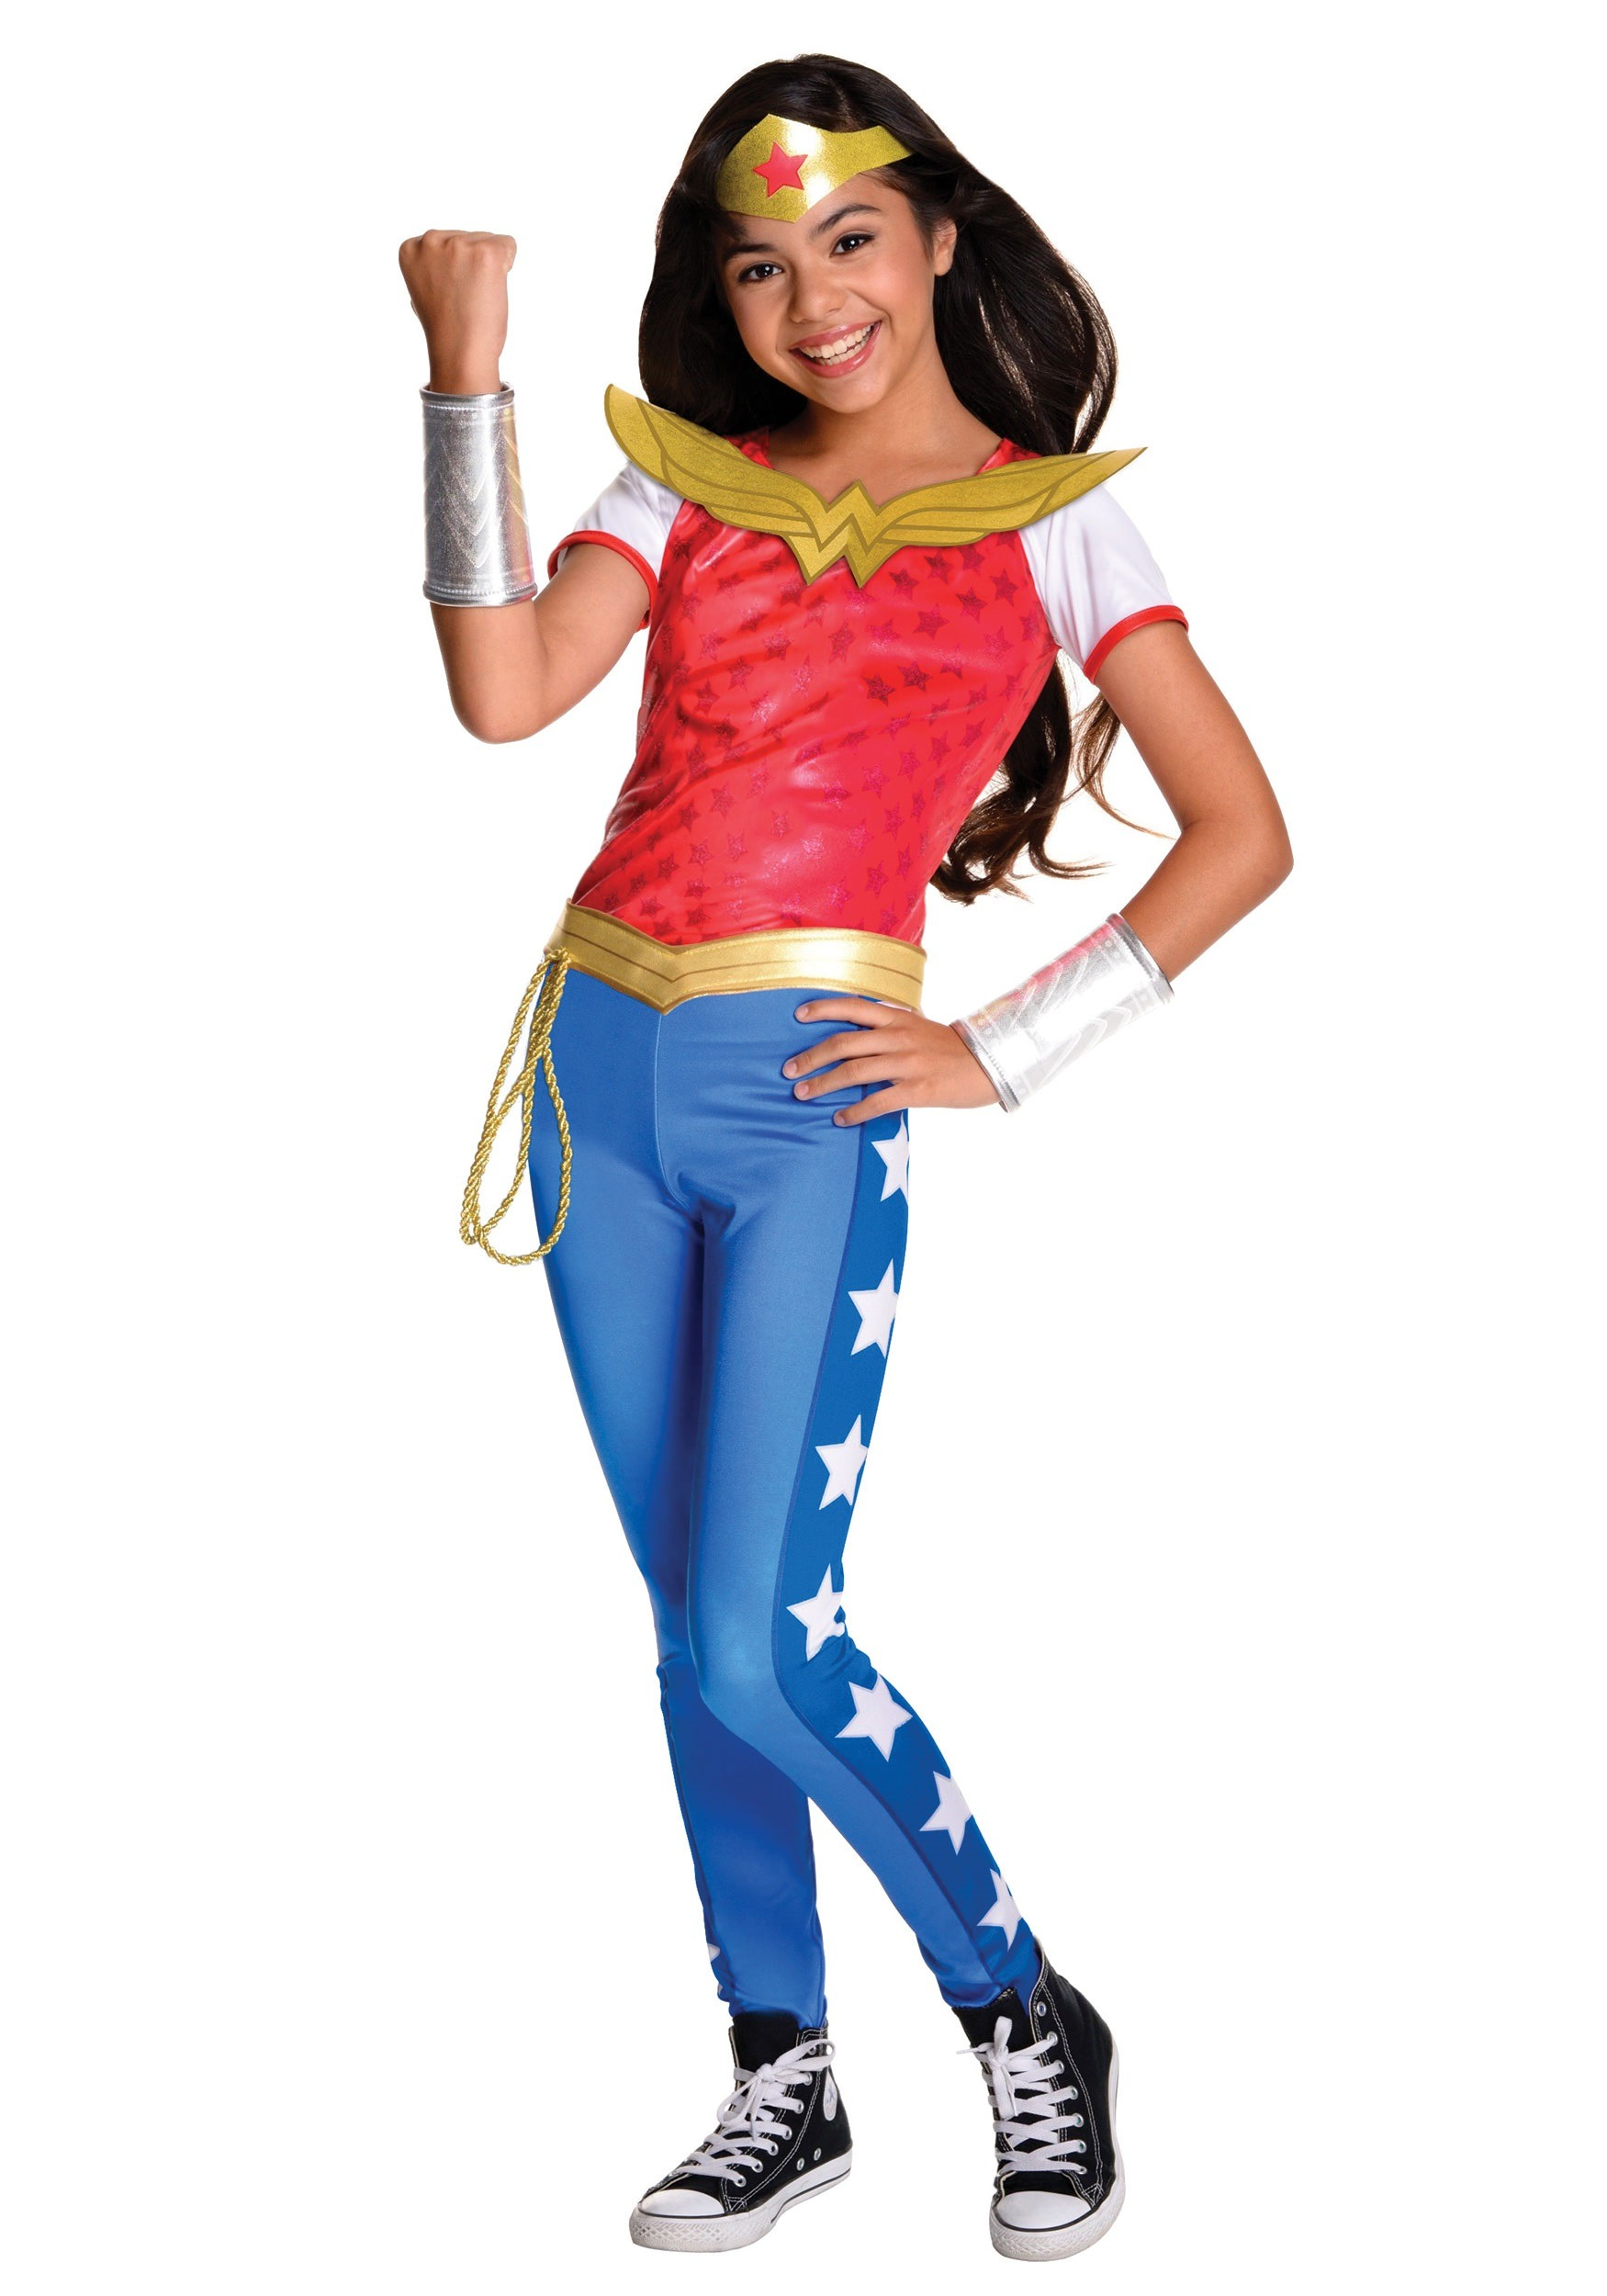 DC Superhero Girls Deluxe Wonder Woman Costume  sc 1 st  Halloween Costumes & DC Superhero Girls Costumes - Girls Superhero Costumes